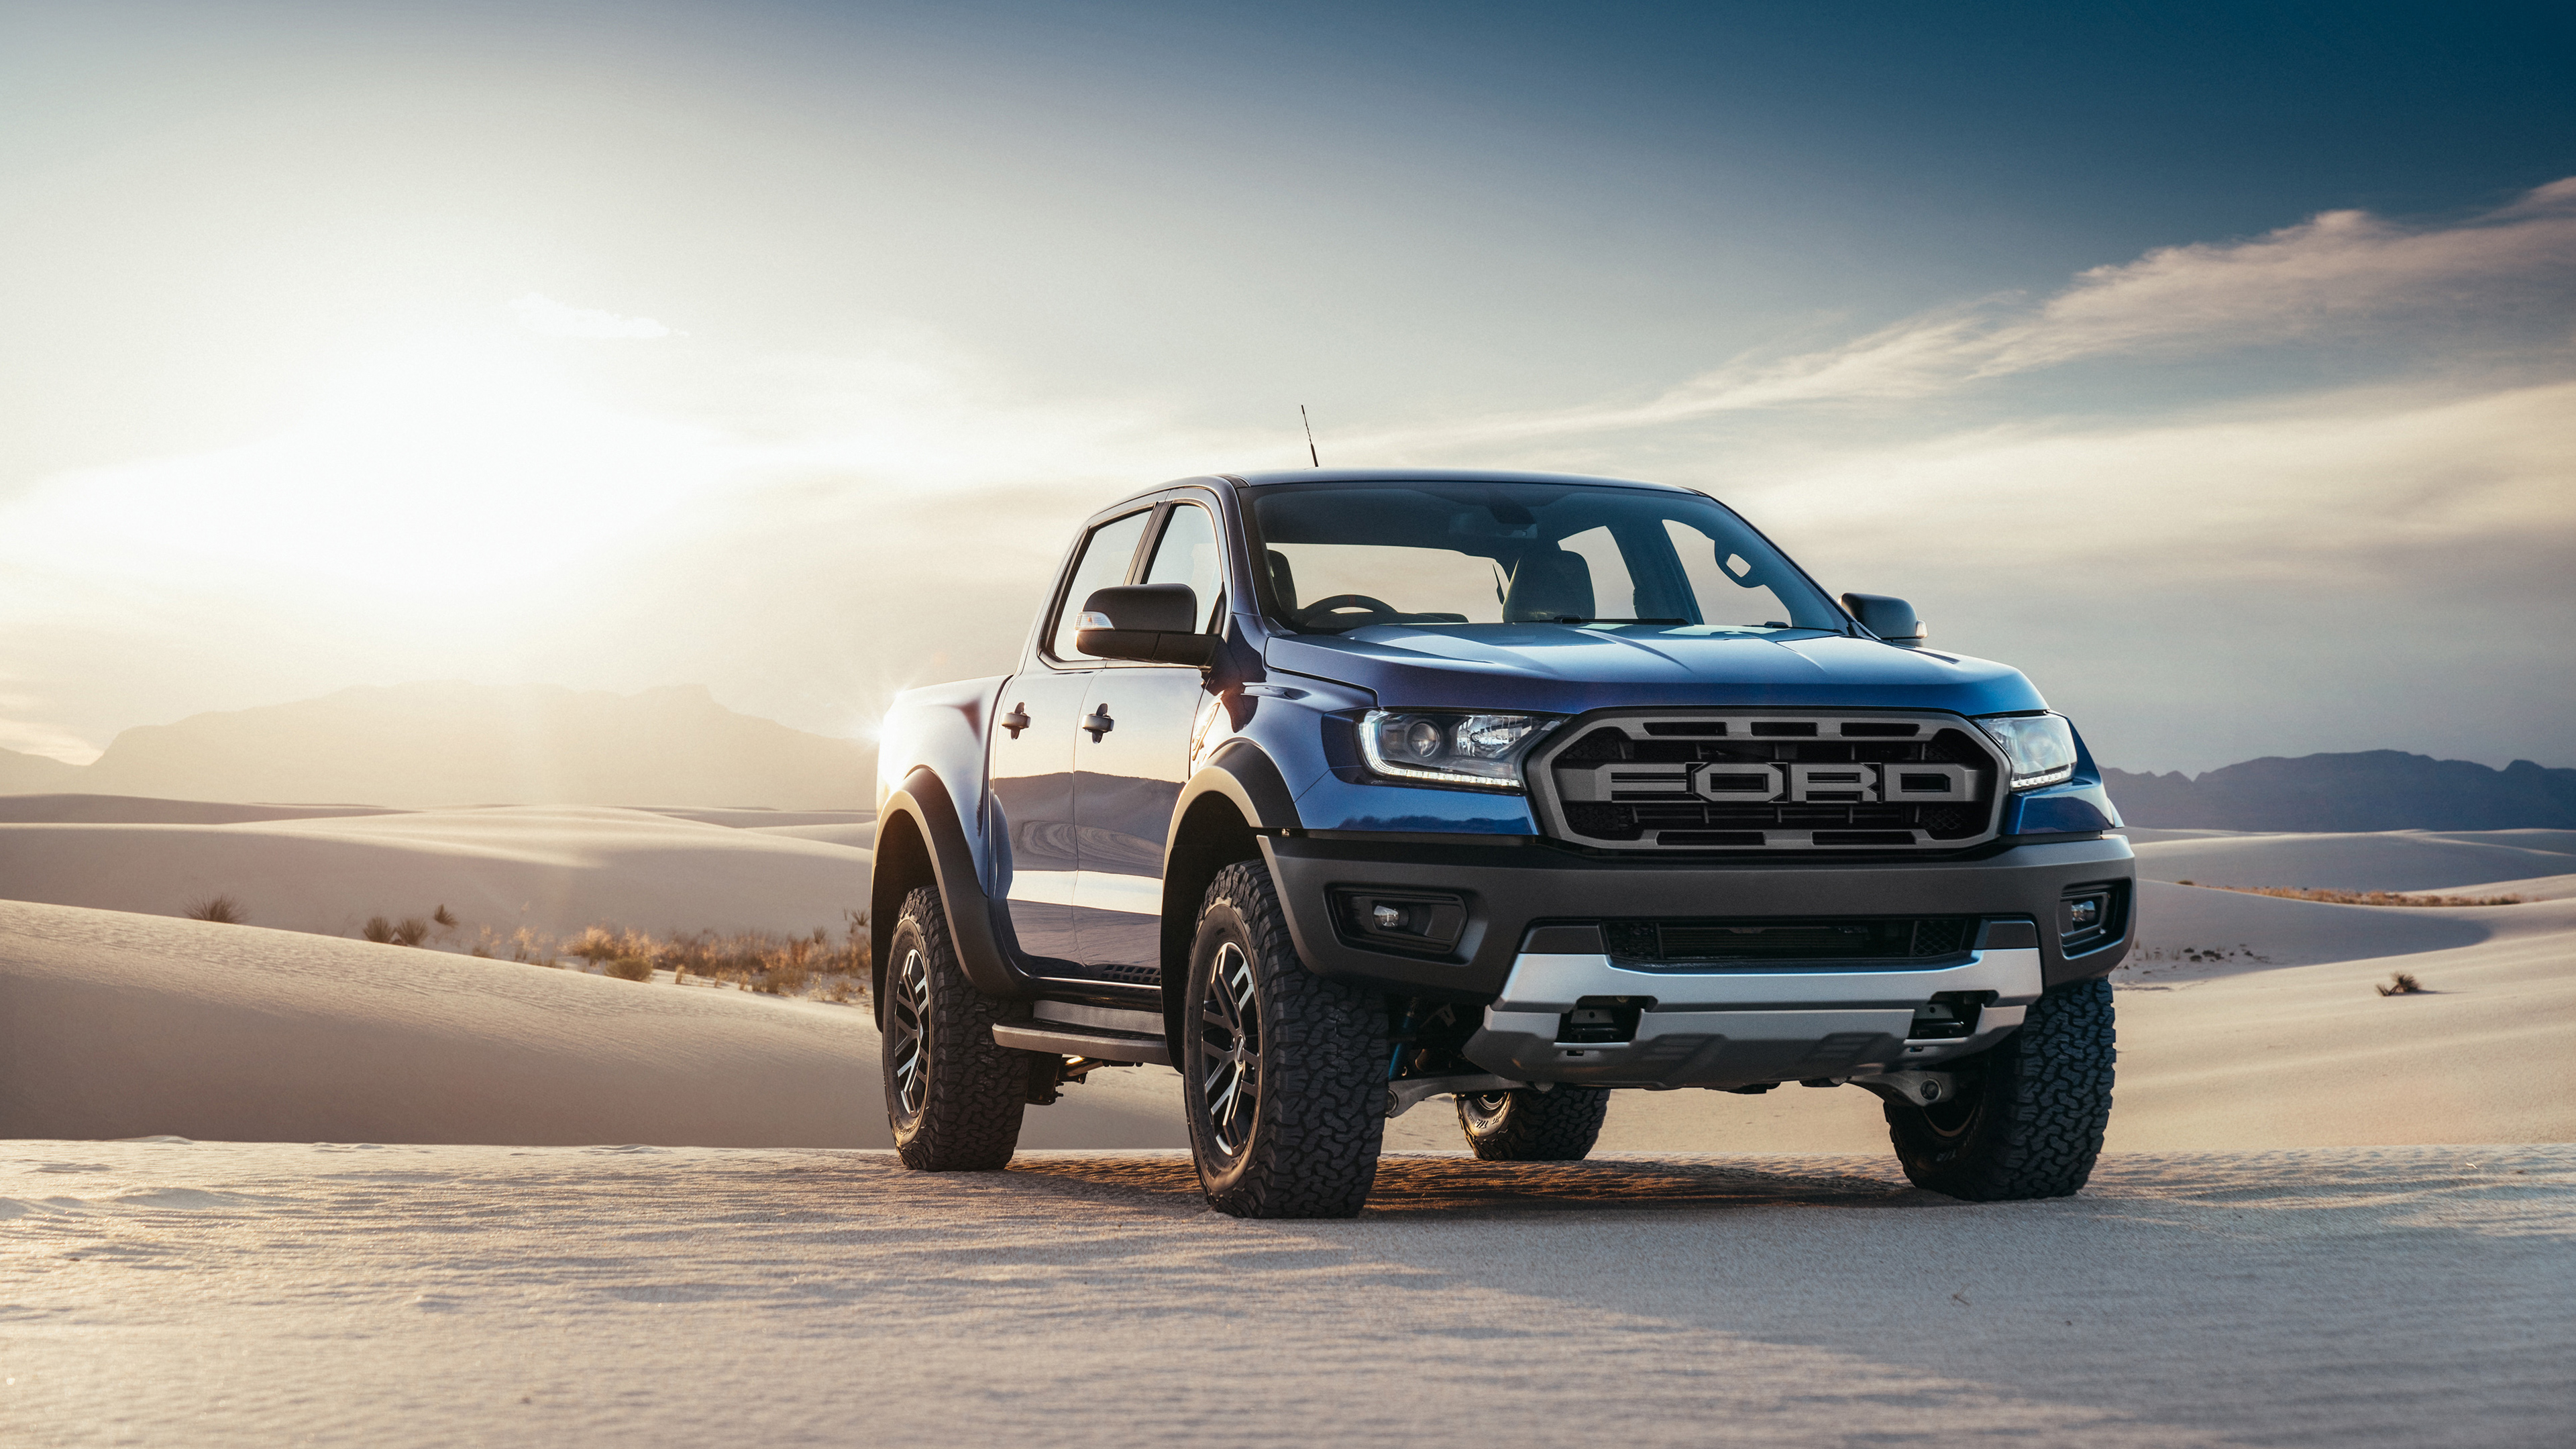 3840x2160 - Ford Ranger Wallpapers 3